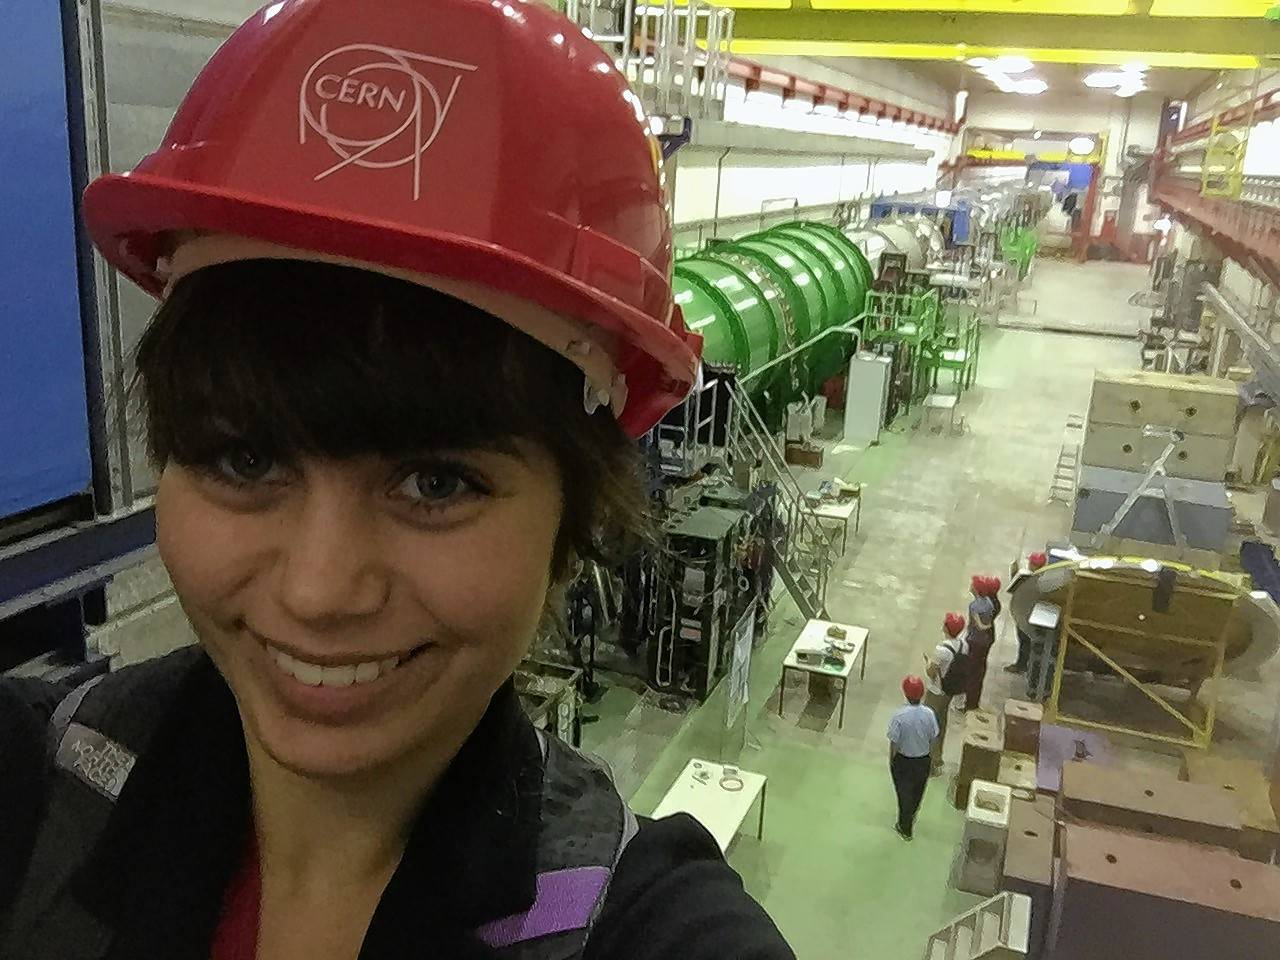 Naperville student interns at Europe's CERN lab